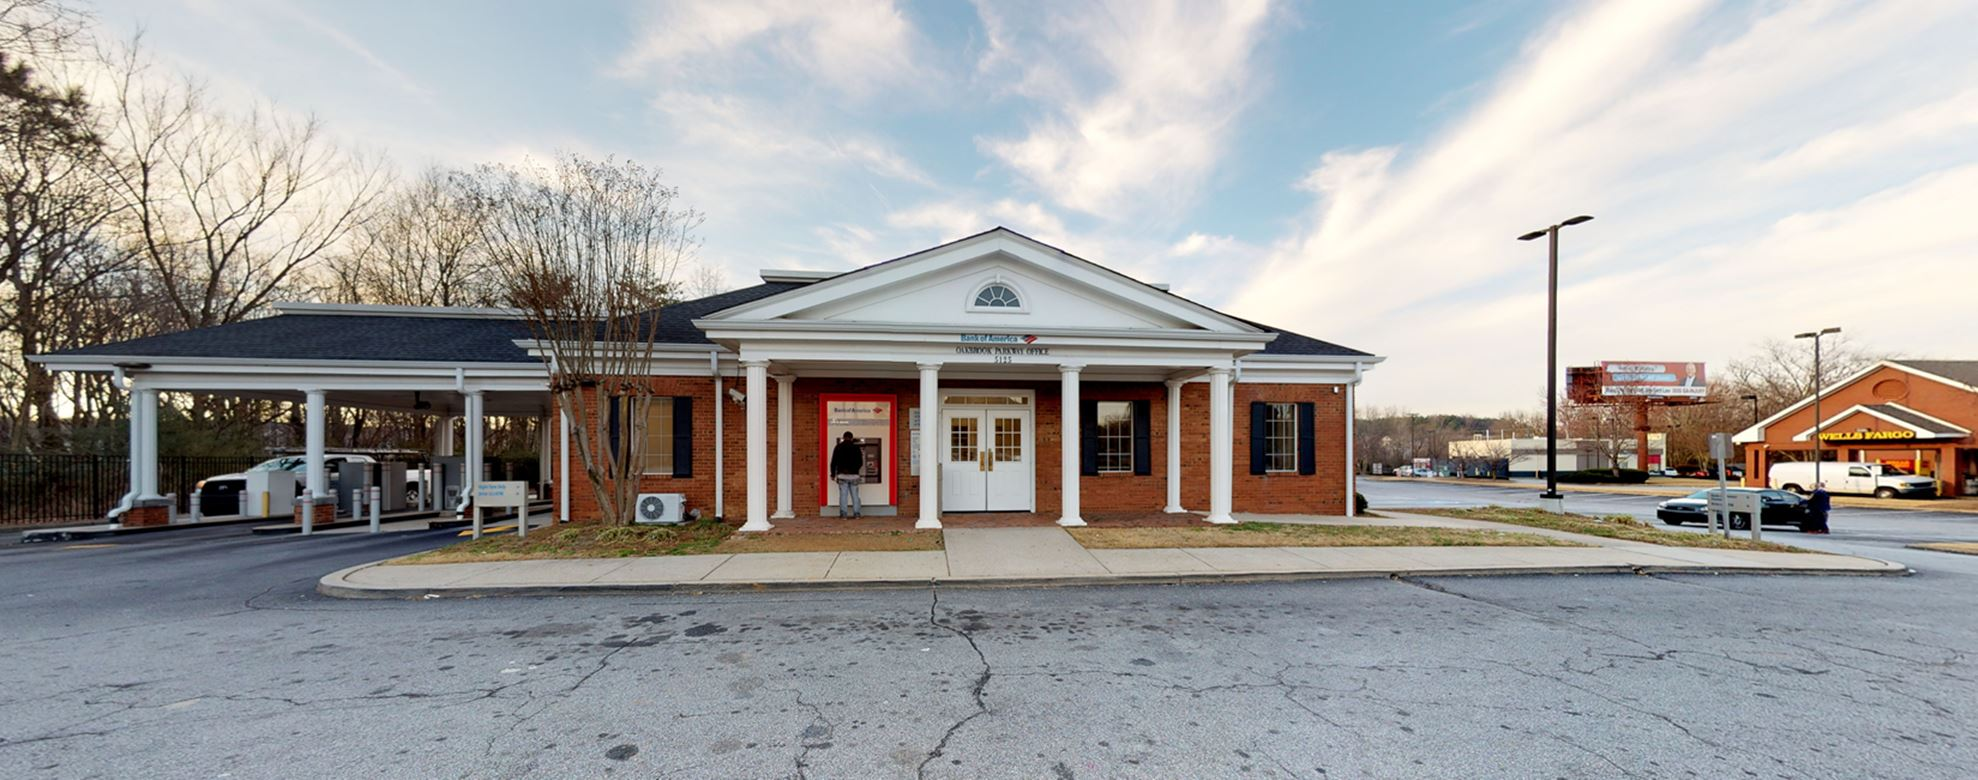 Bank of America financial center with drive-thru ATM | 5125 Oakbrook Pkwy, Norcross, GA 30093